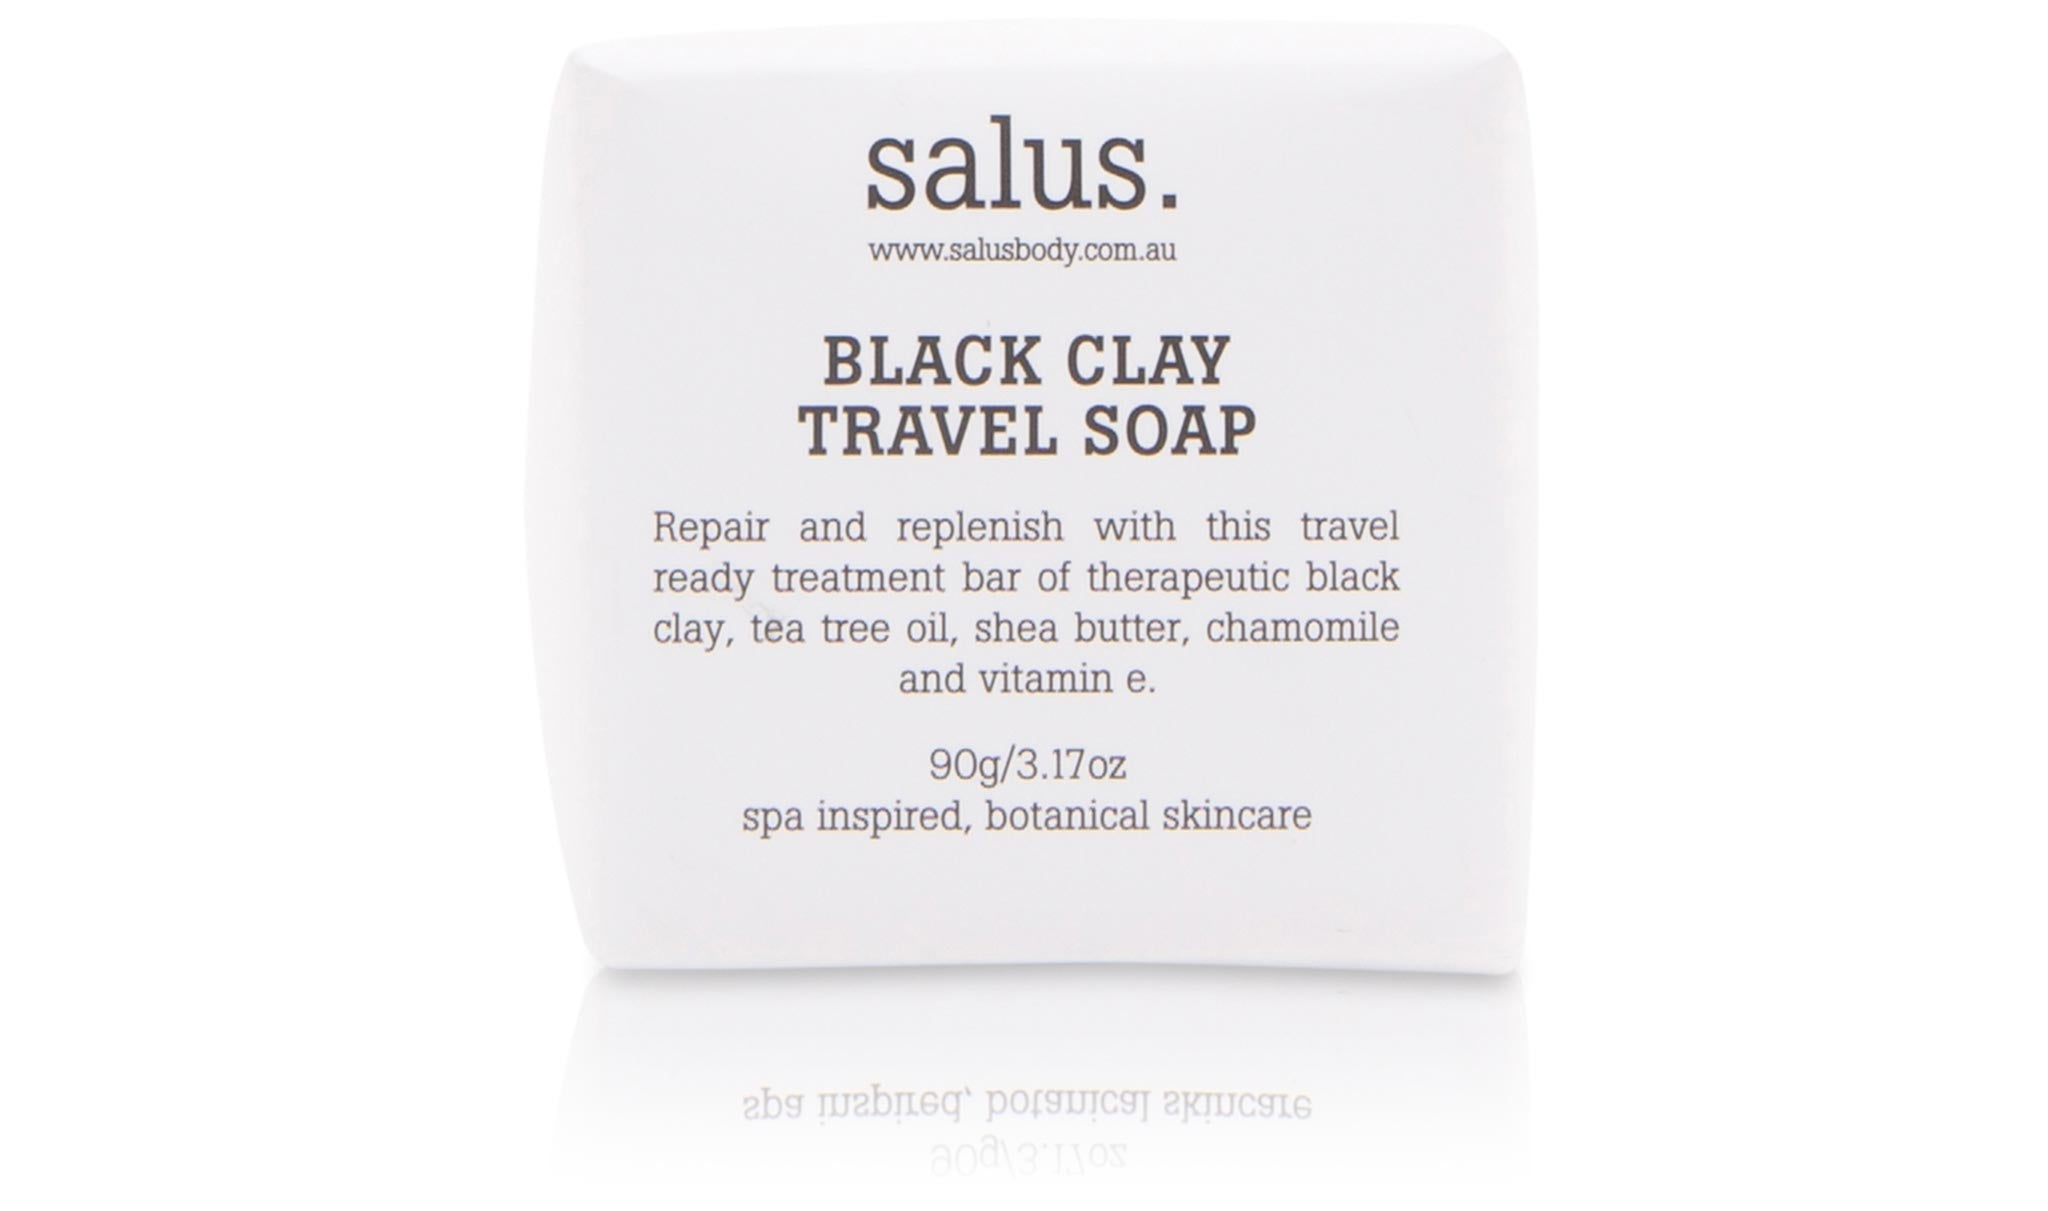 Black Clay Travel Soap